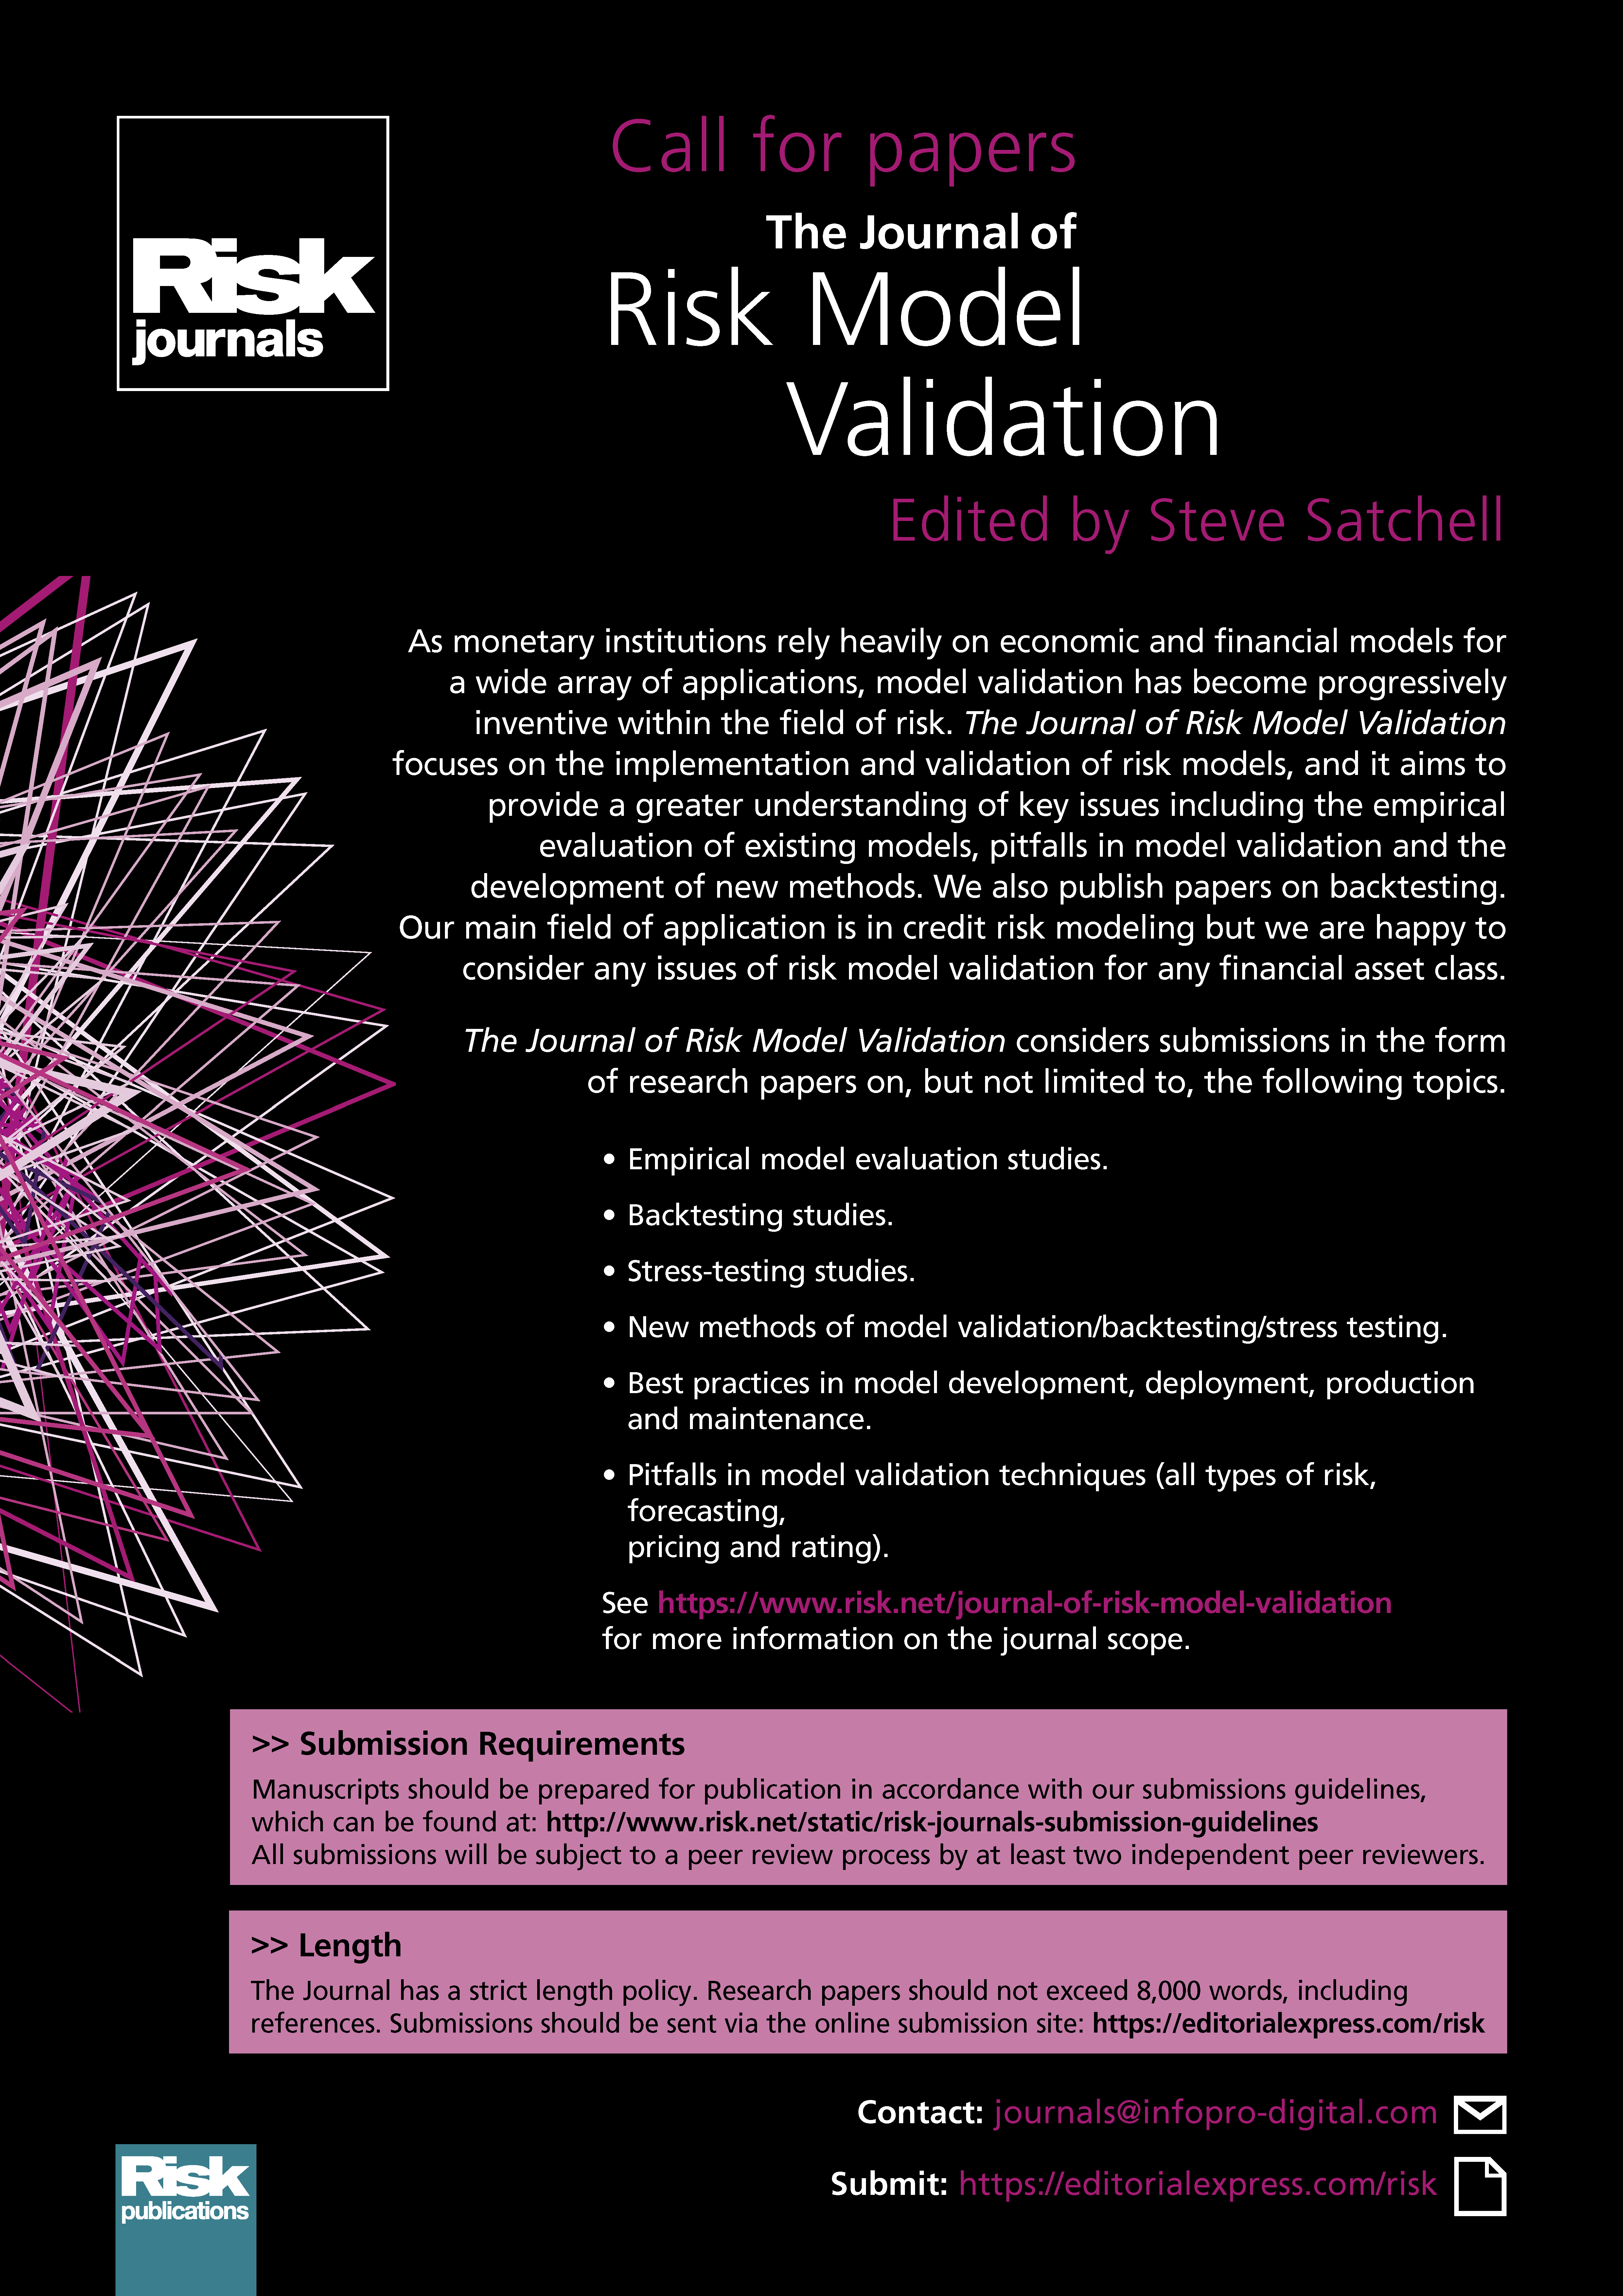 Call for papers - Risk net